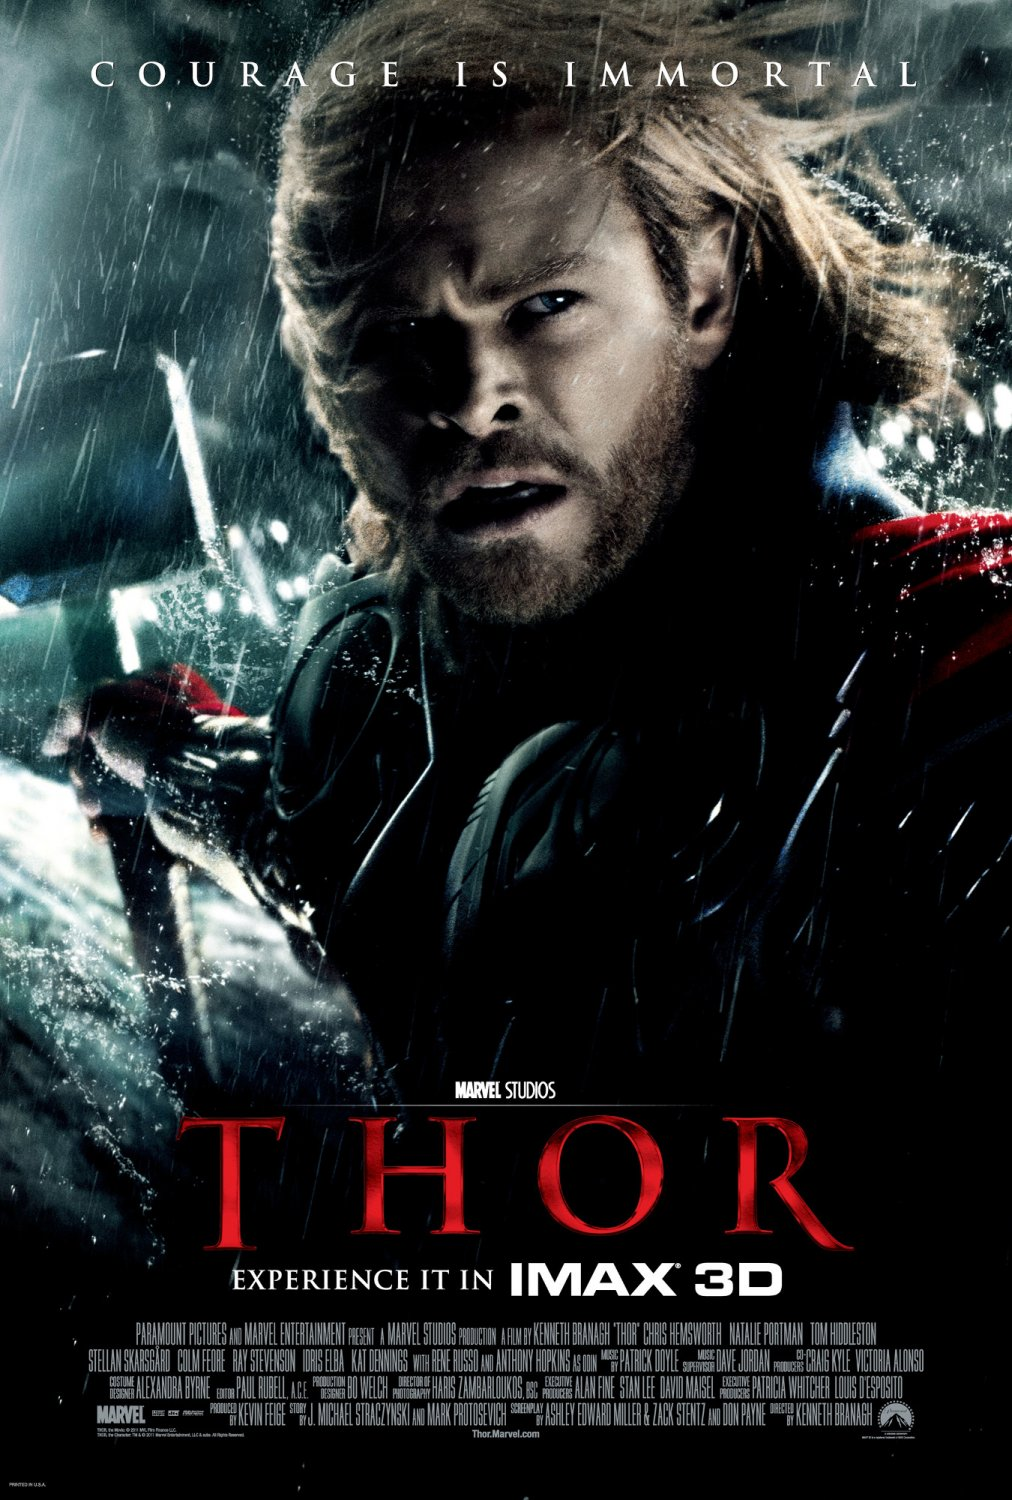 Thor theatrical one sheet movie poster